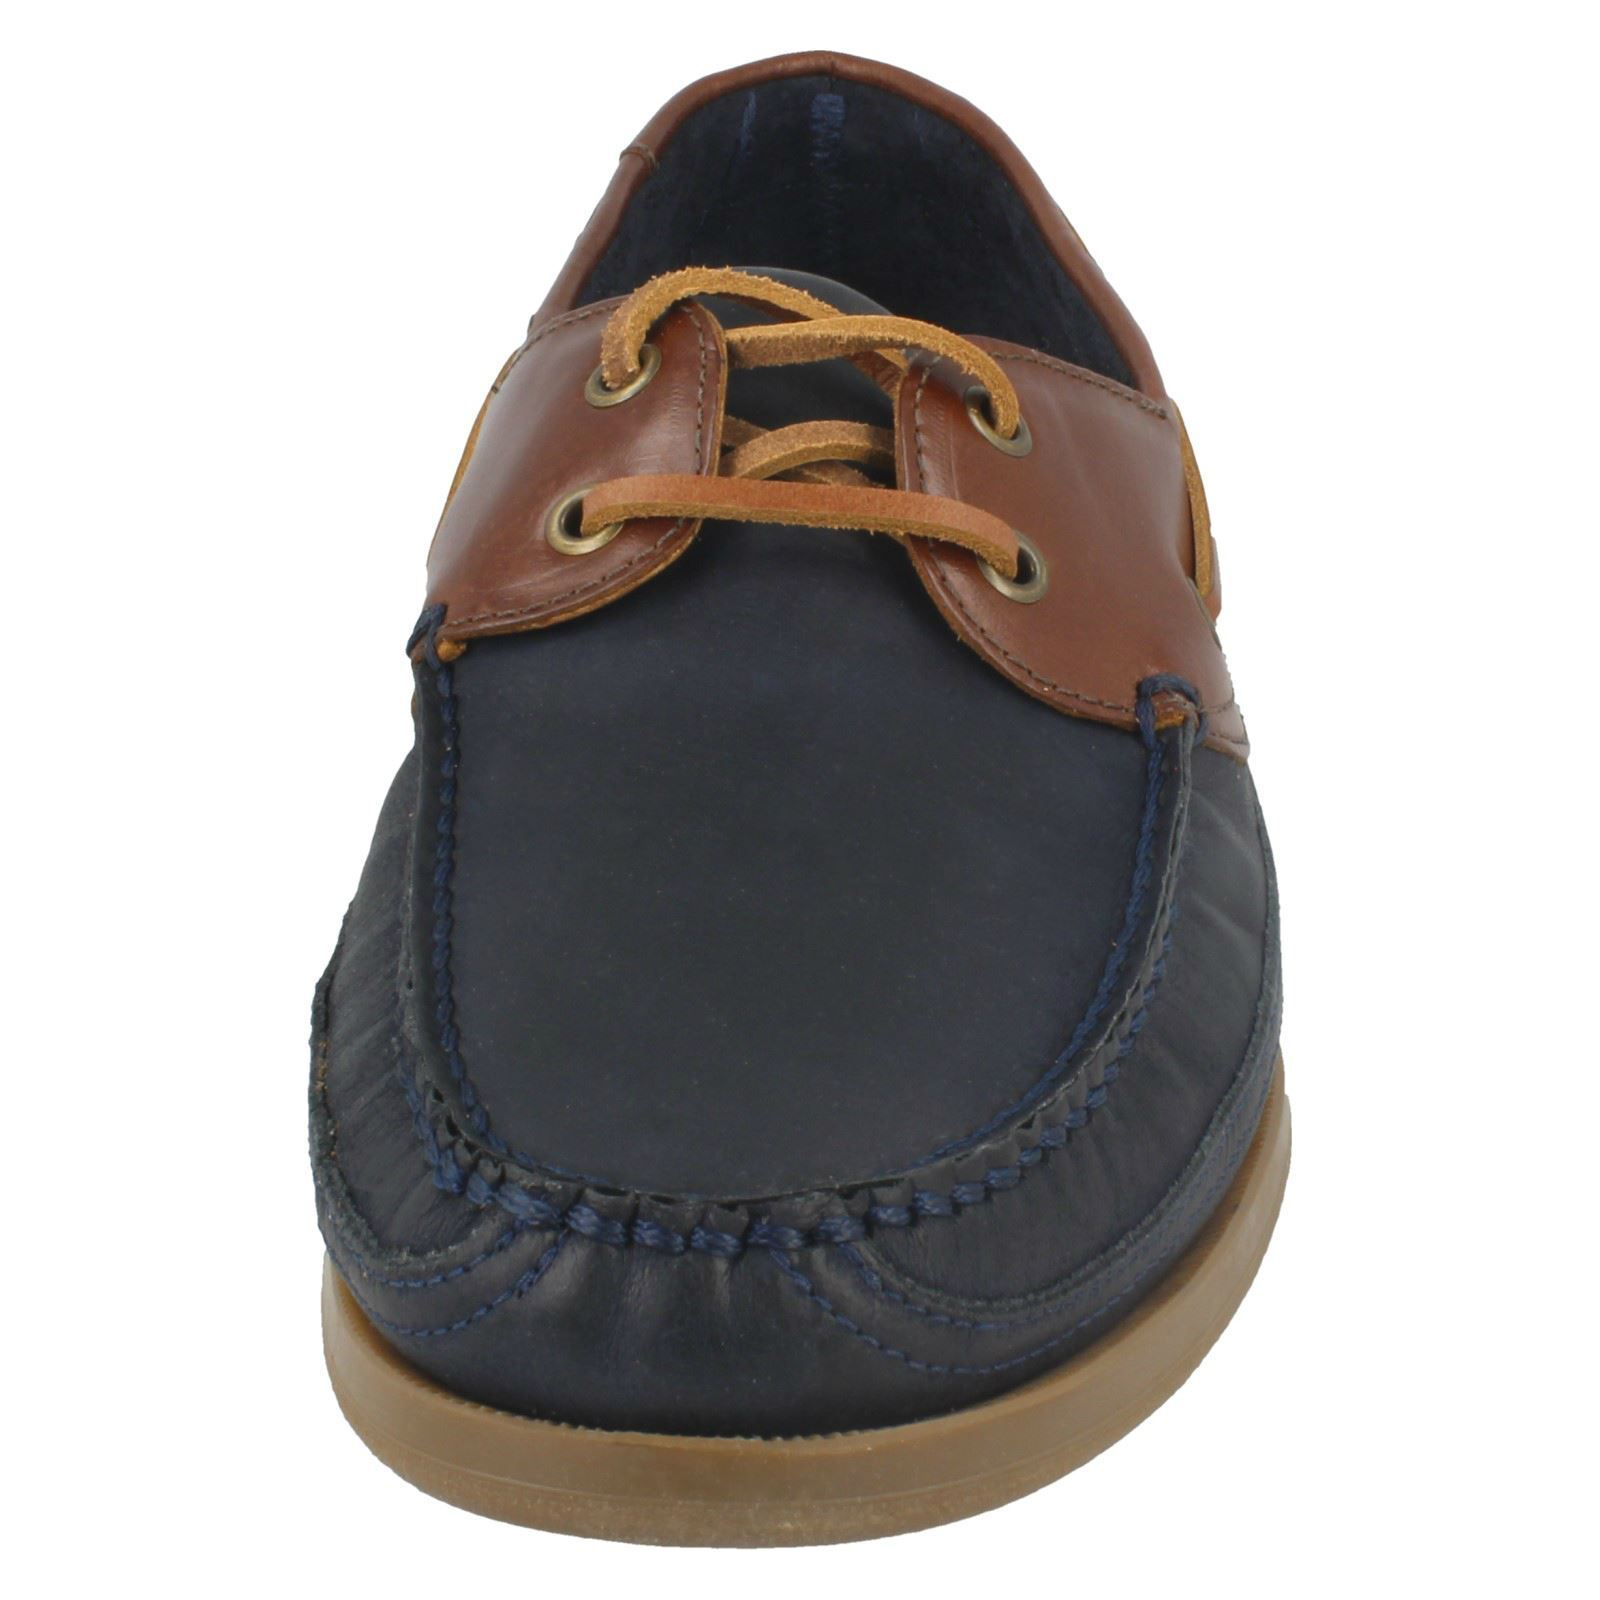 Mens Anatomic Navy Havana /Tobacco Leather Lace Up Boat/Deck Shoes Viana 393920